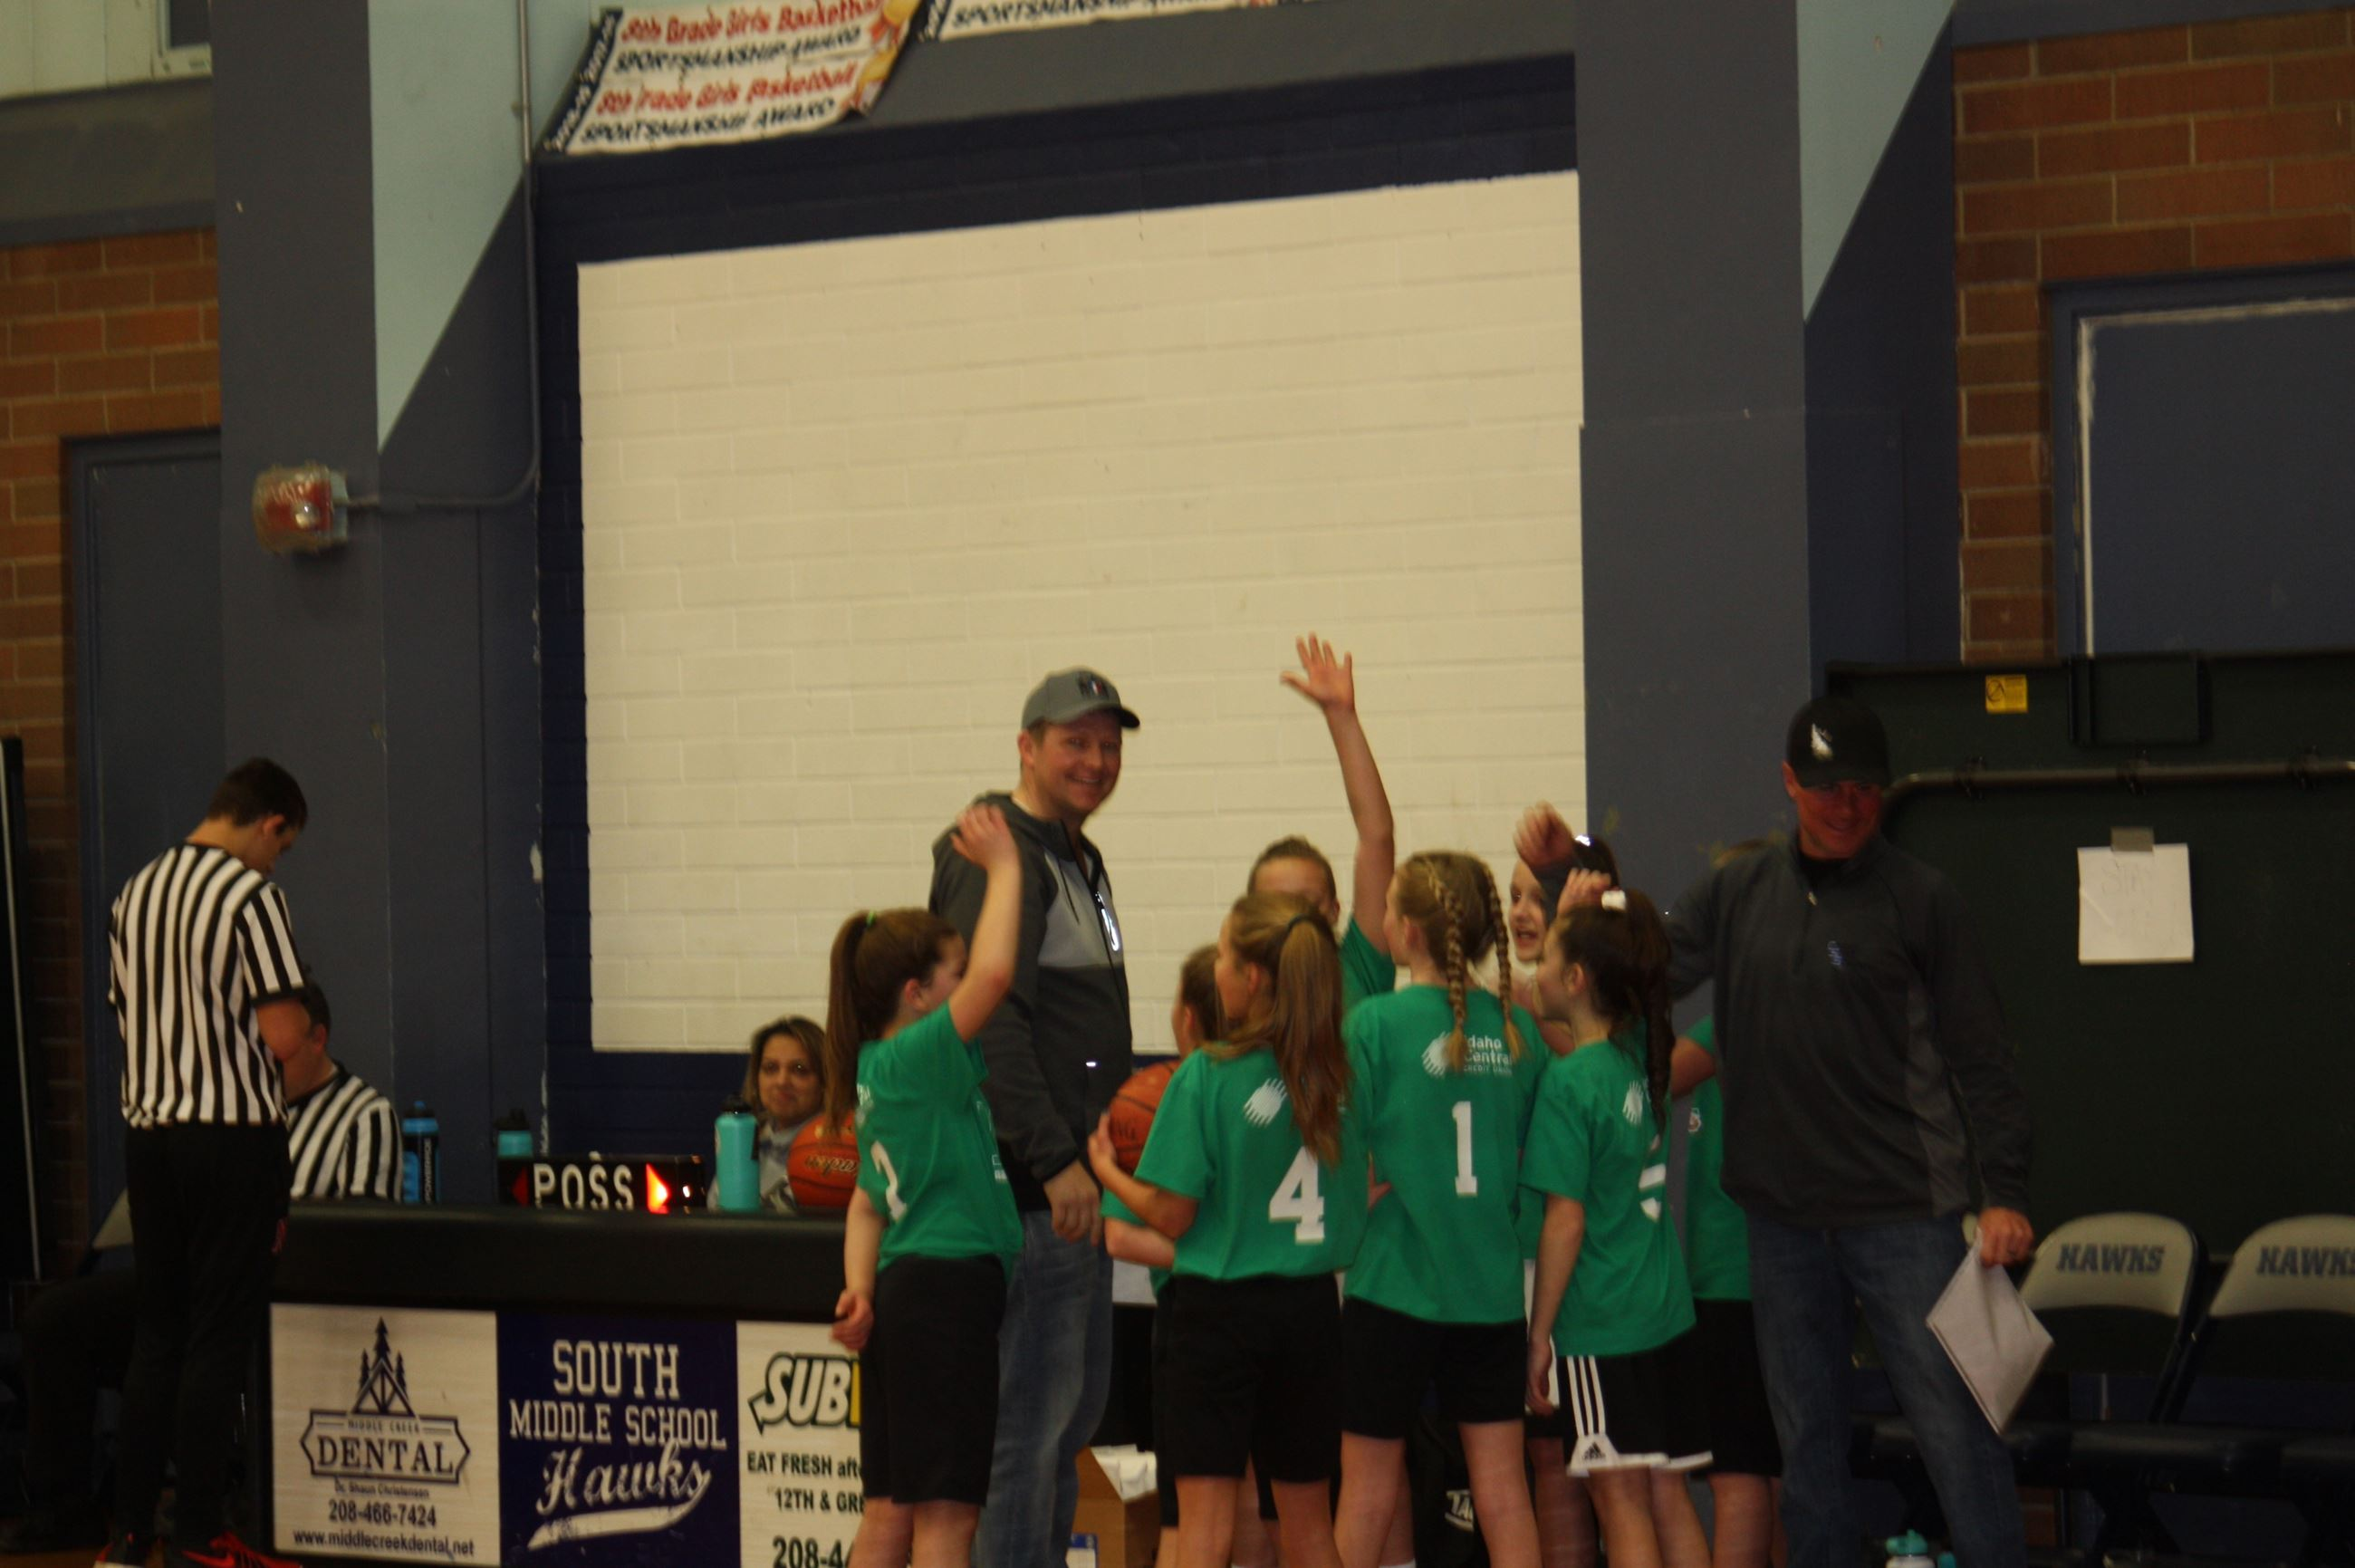 Team of girls in green shirts in a huddle with two adults